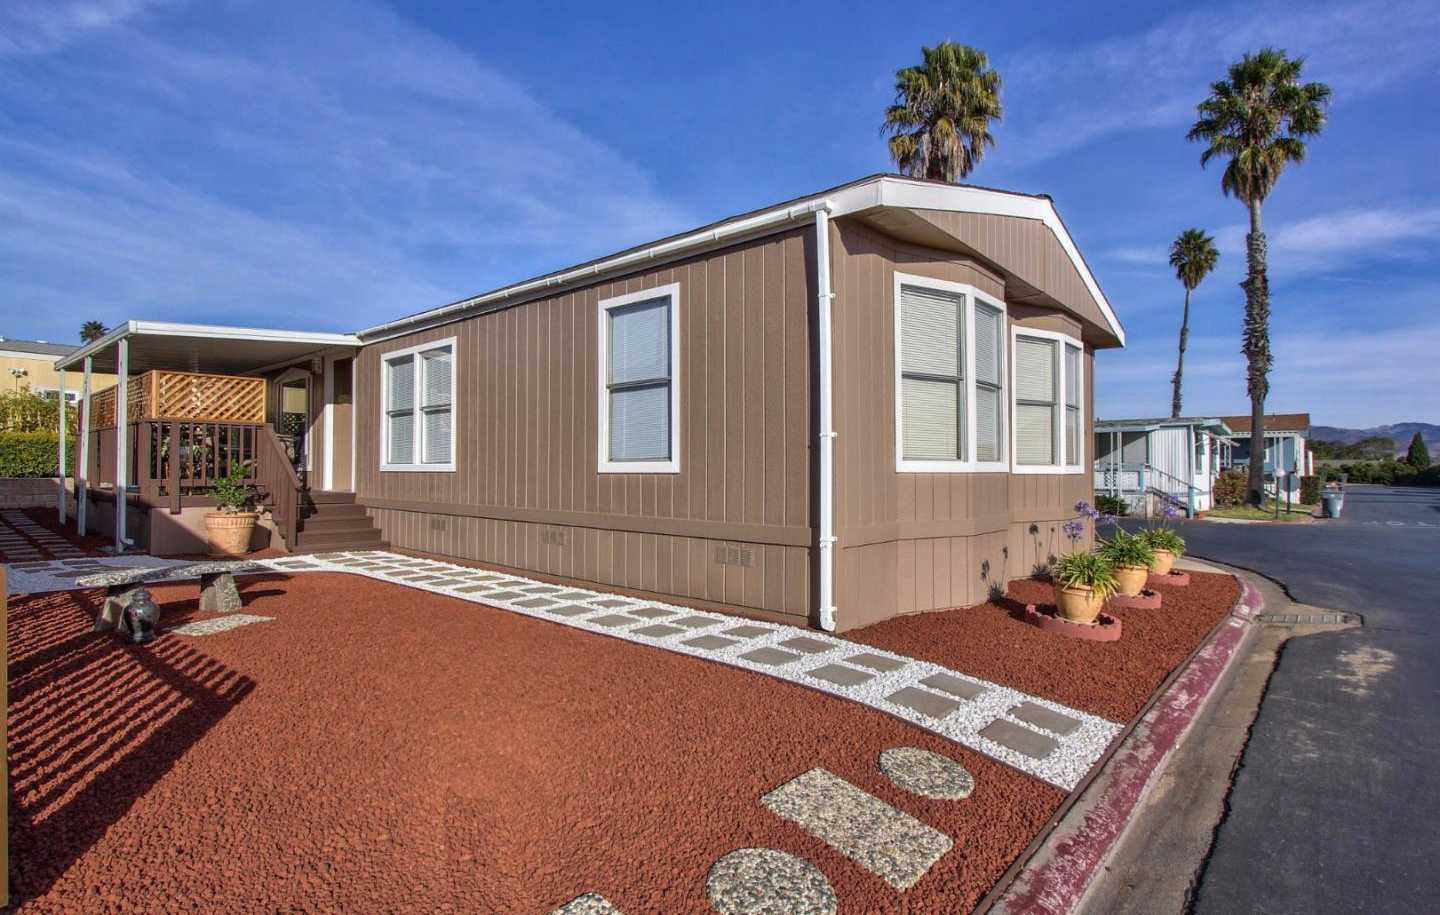 $129,000 - 3Br/2Ba -  for Sale in Salinas